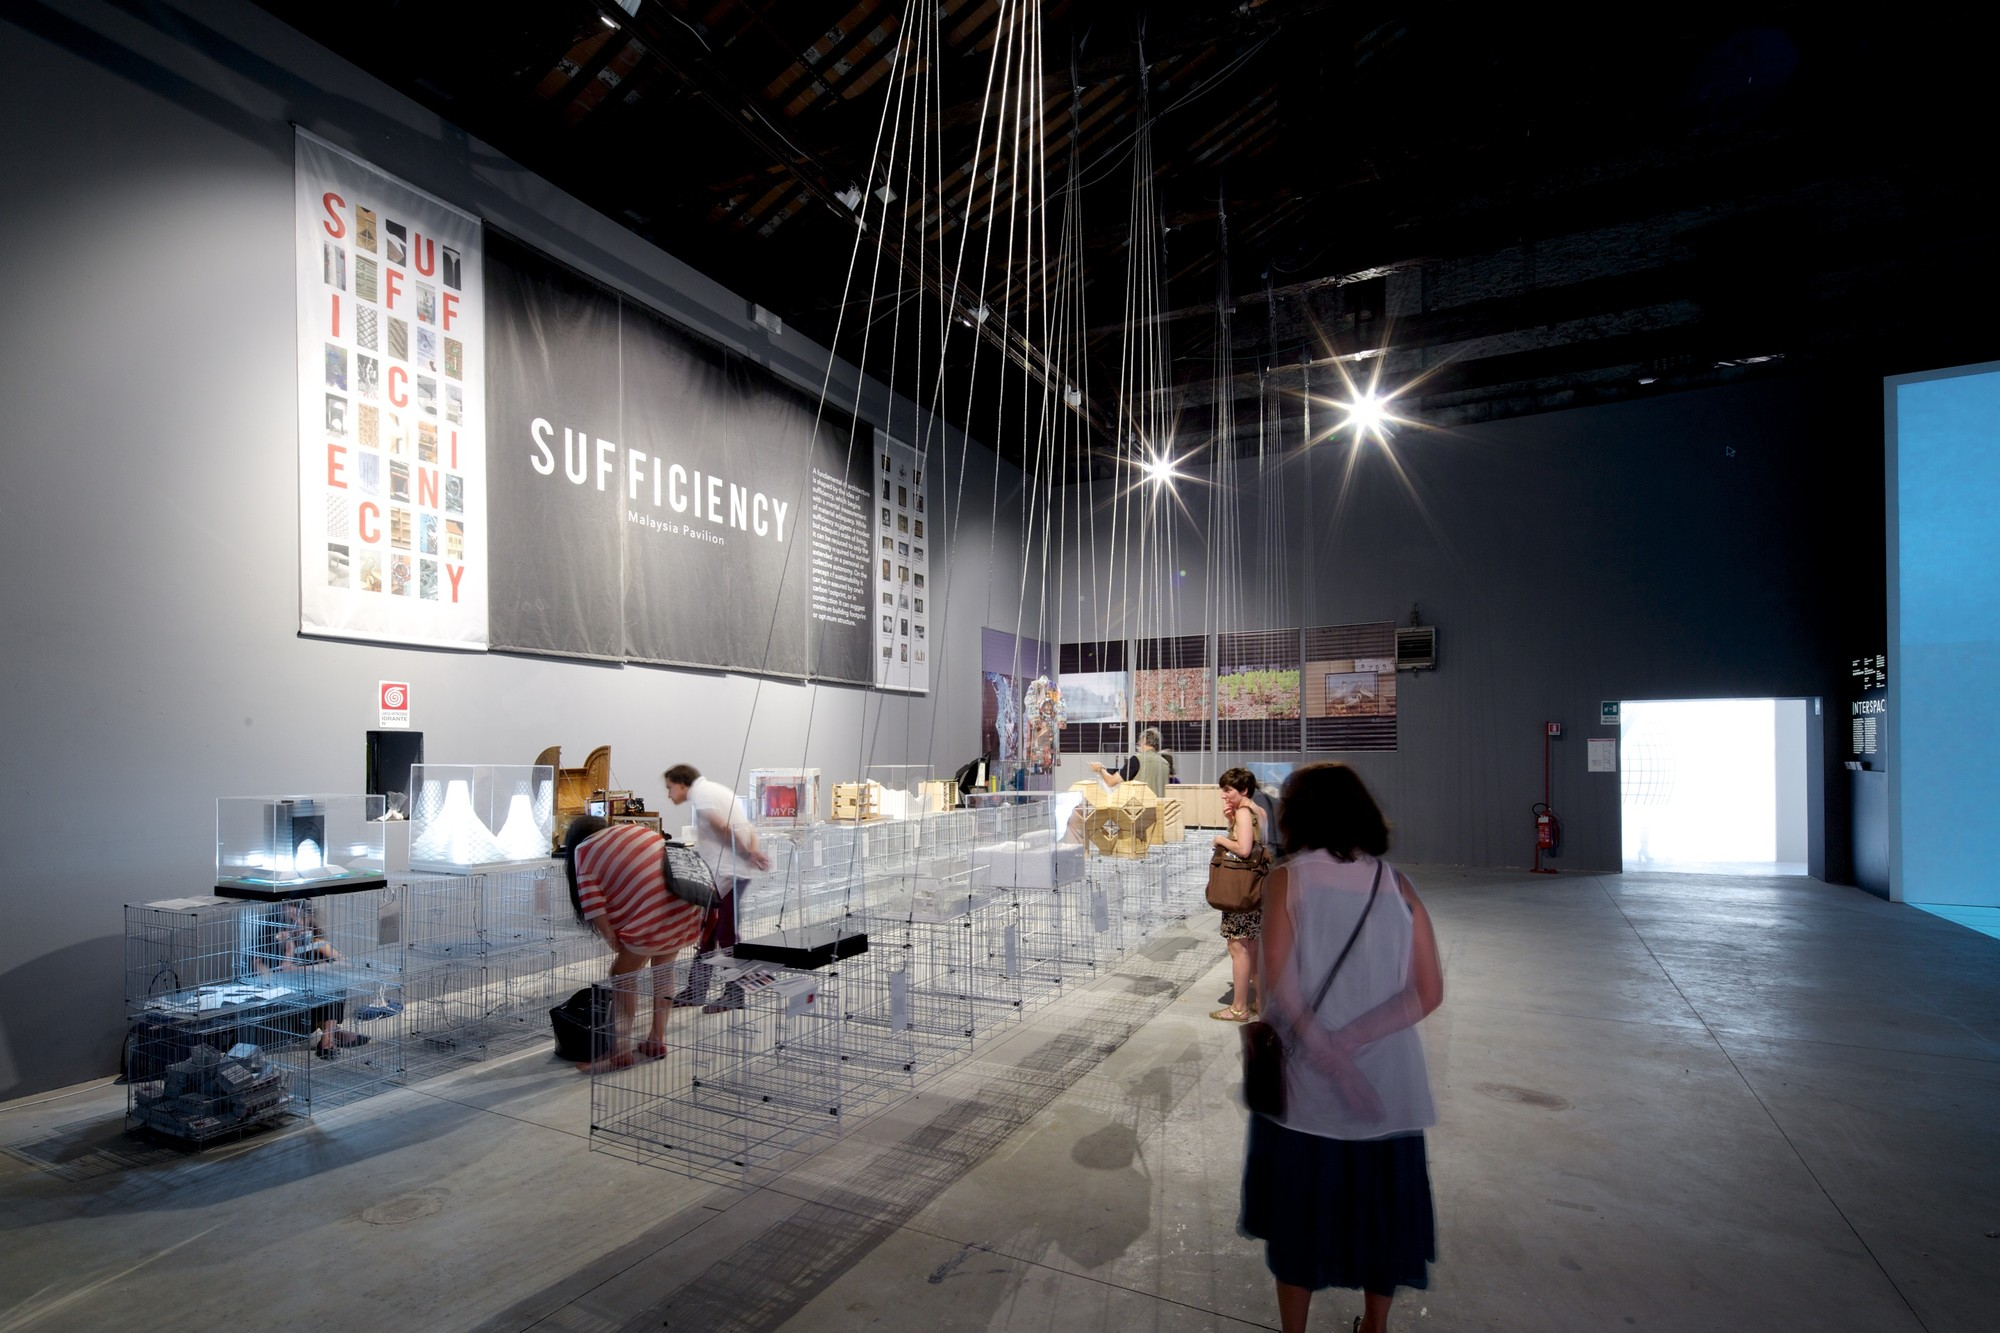 Sufficiency – Inside the Malaysia Pavilion at the 2014 Venice Biennale, Sufficiency. The Malaysia Pavilion at the 2014 Venice Biennale. Image © Nico Saieh